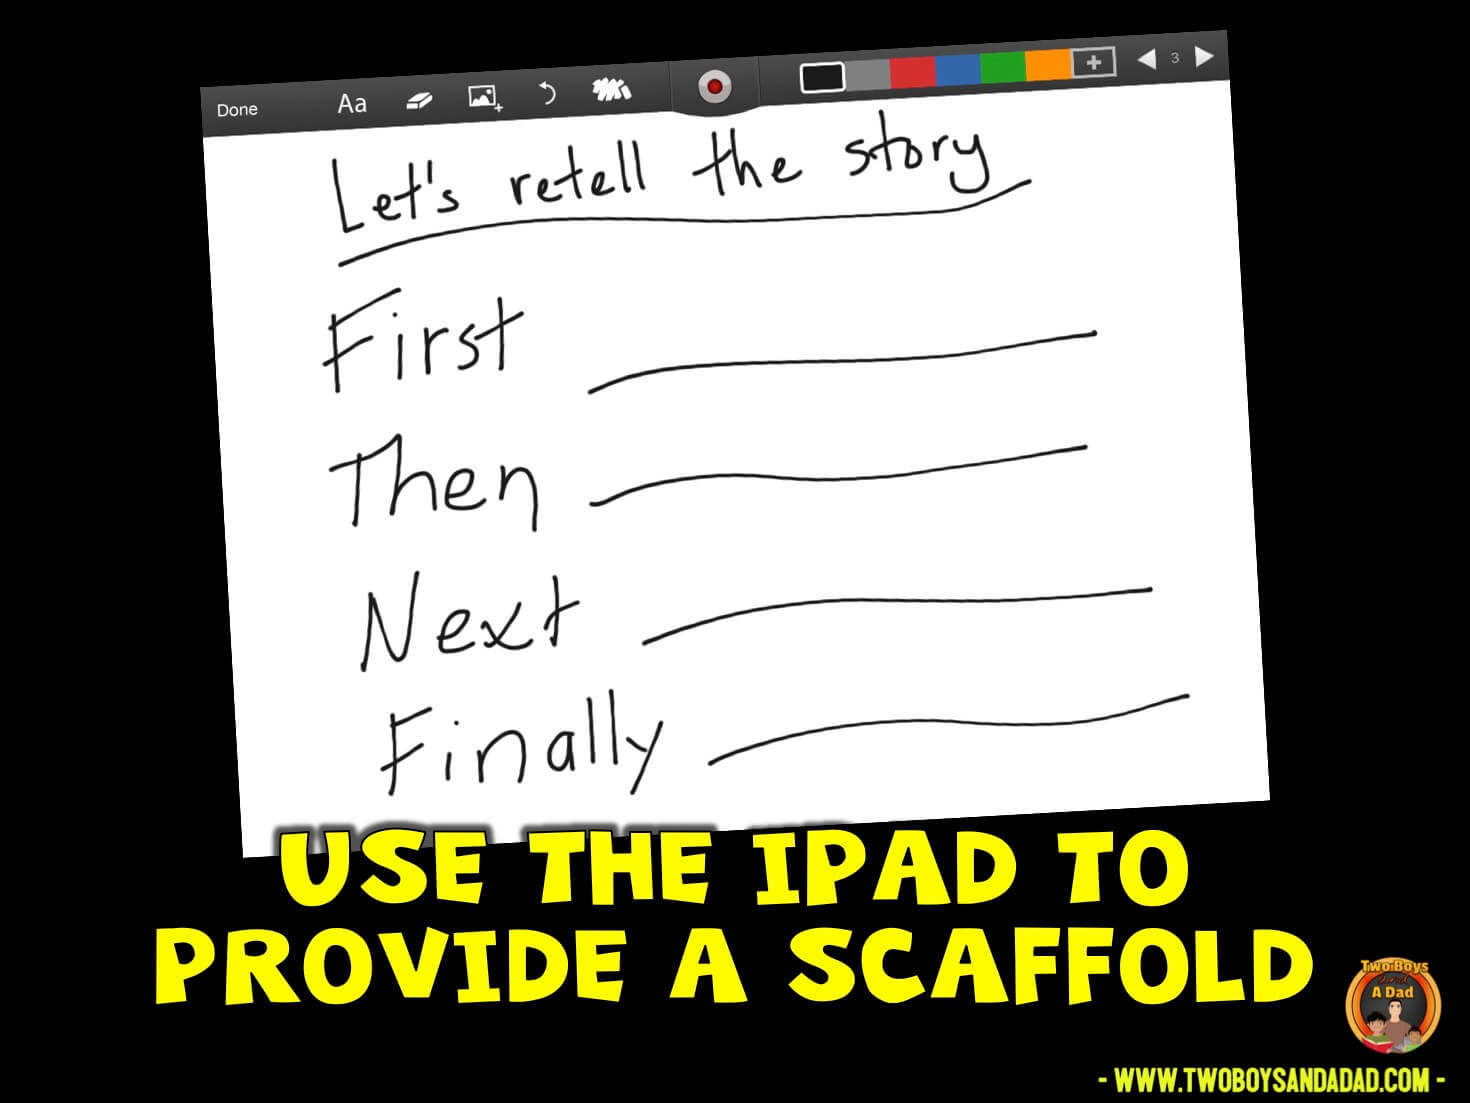 using the iPad during guided reading to provide a scaffold